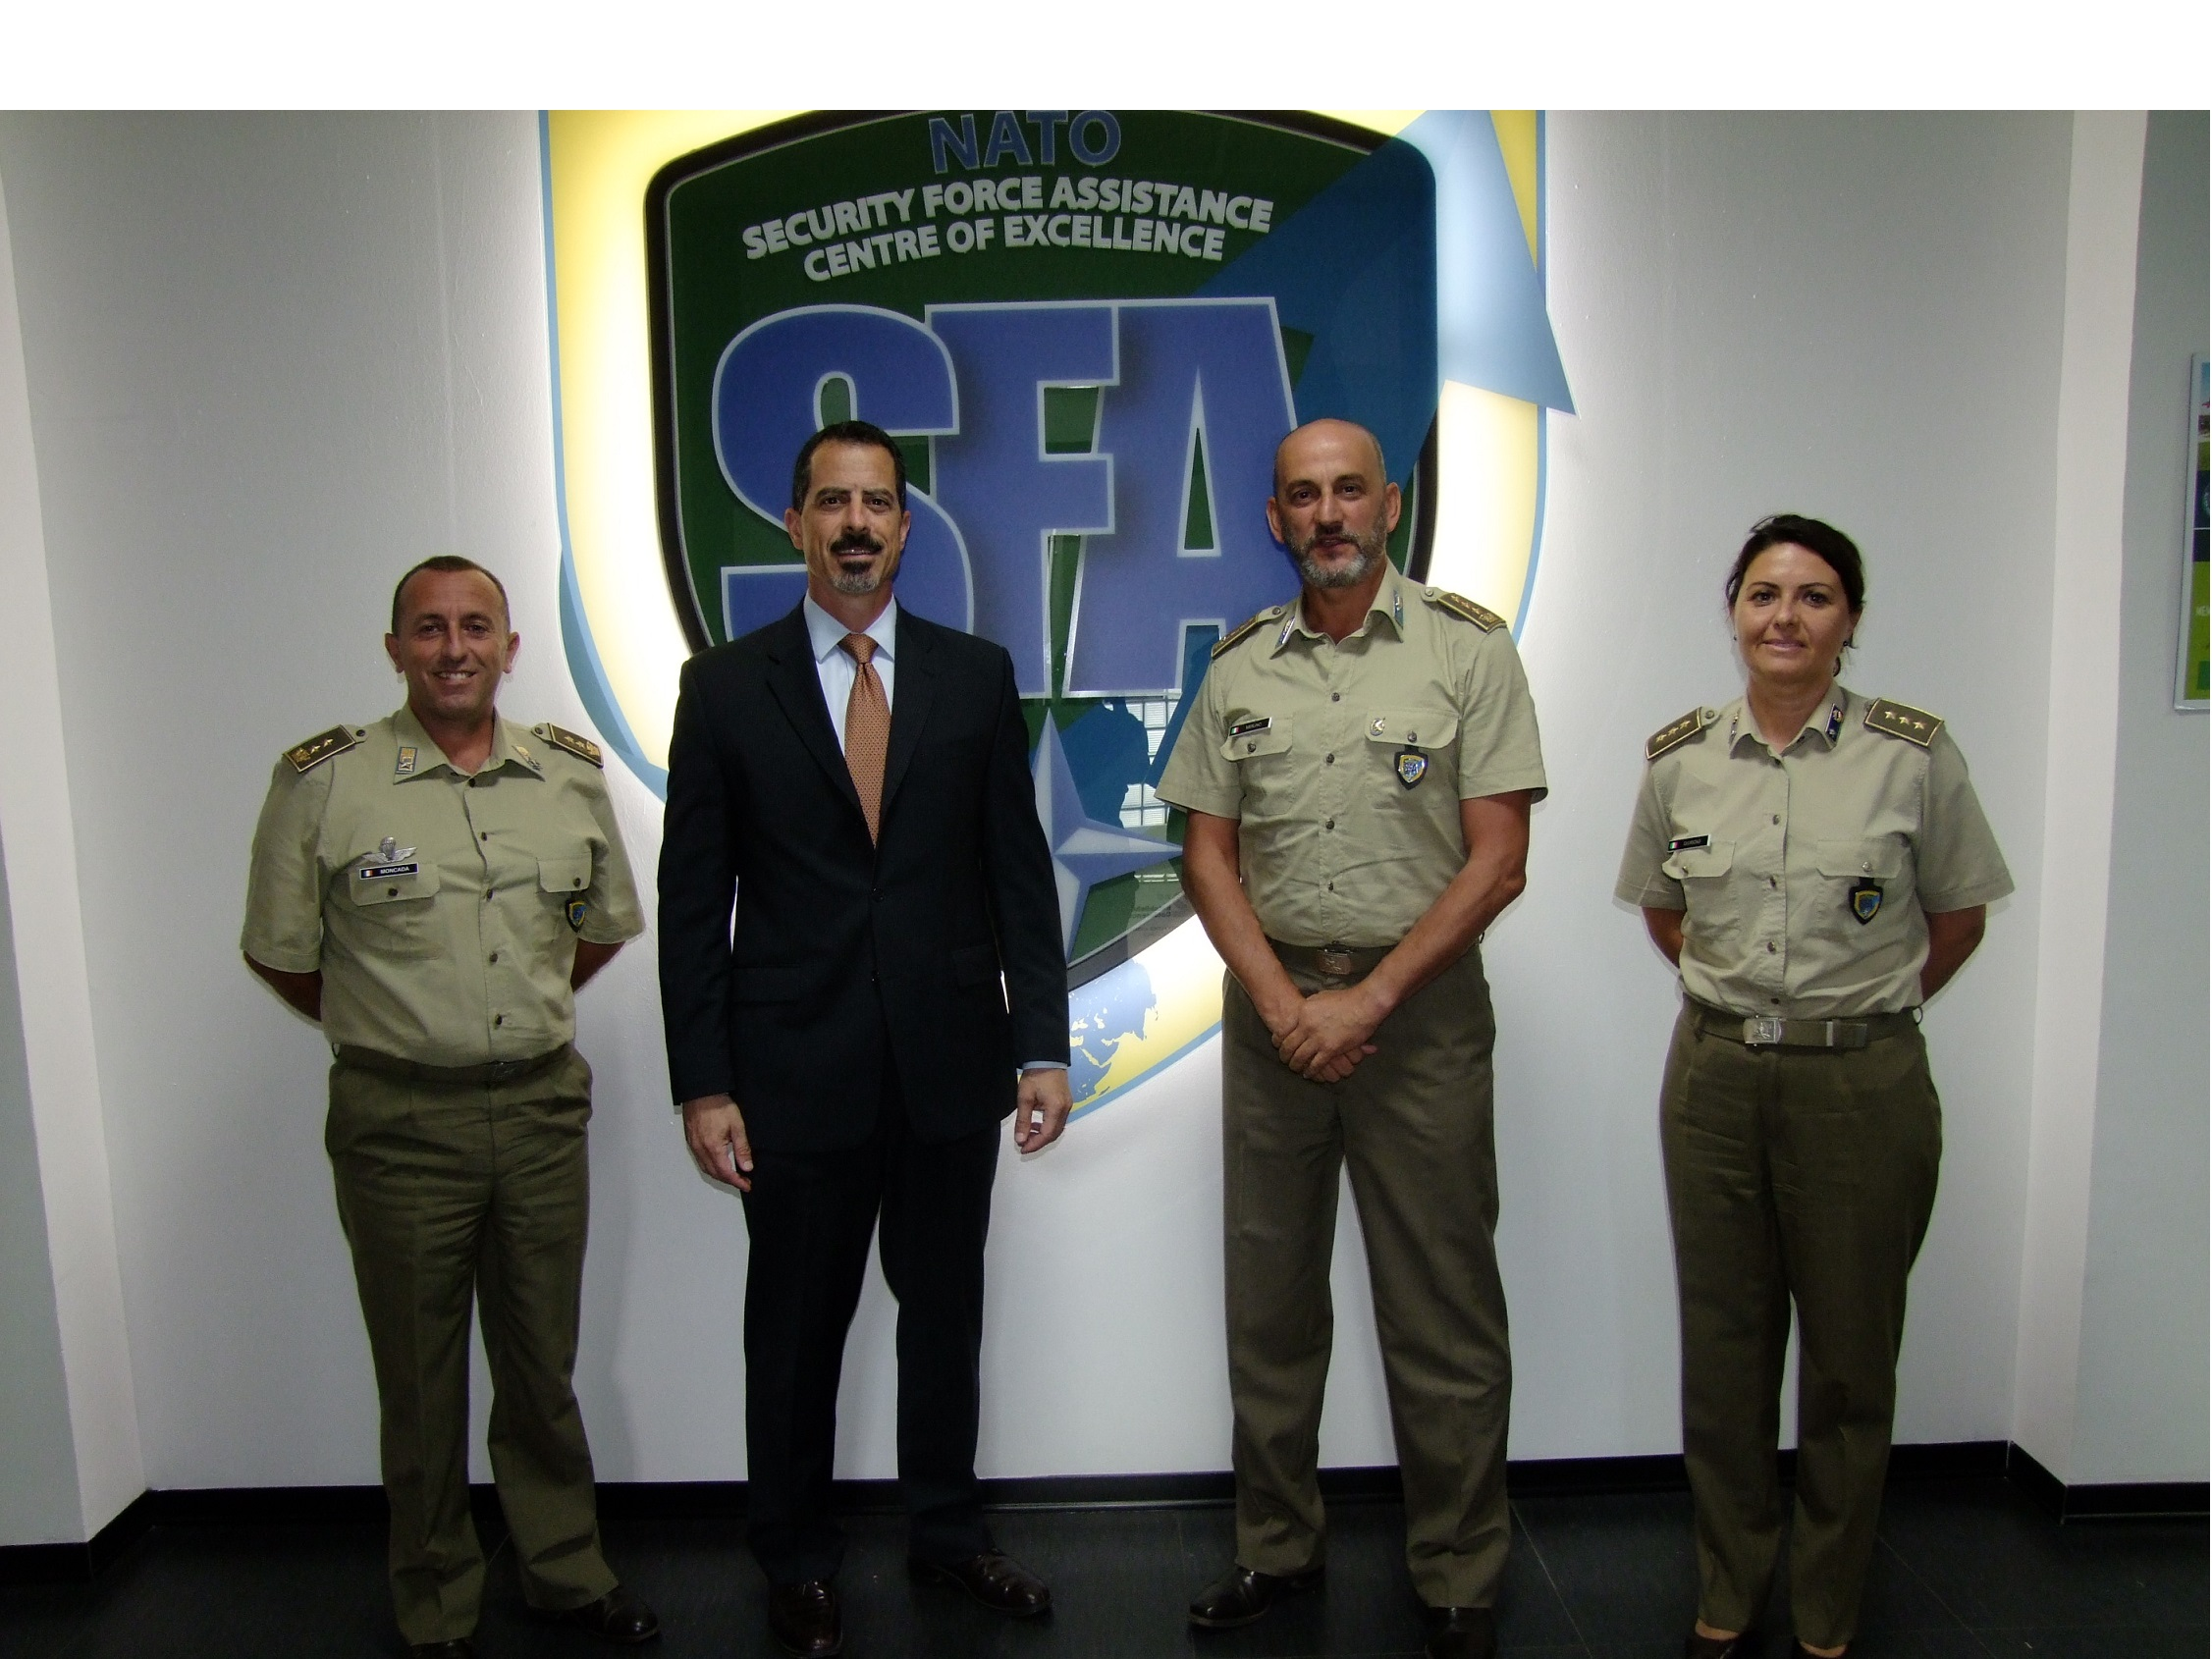 NATO SFA COE and the NATO HQ International Staff signed a Memorandum of Cooperation